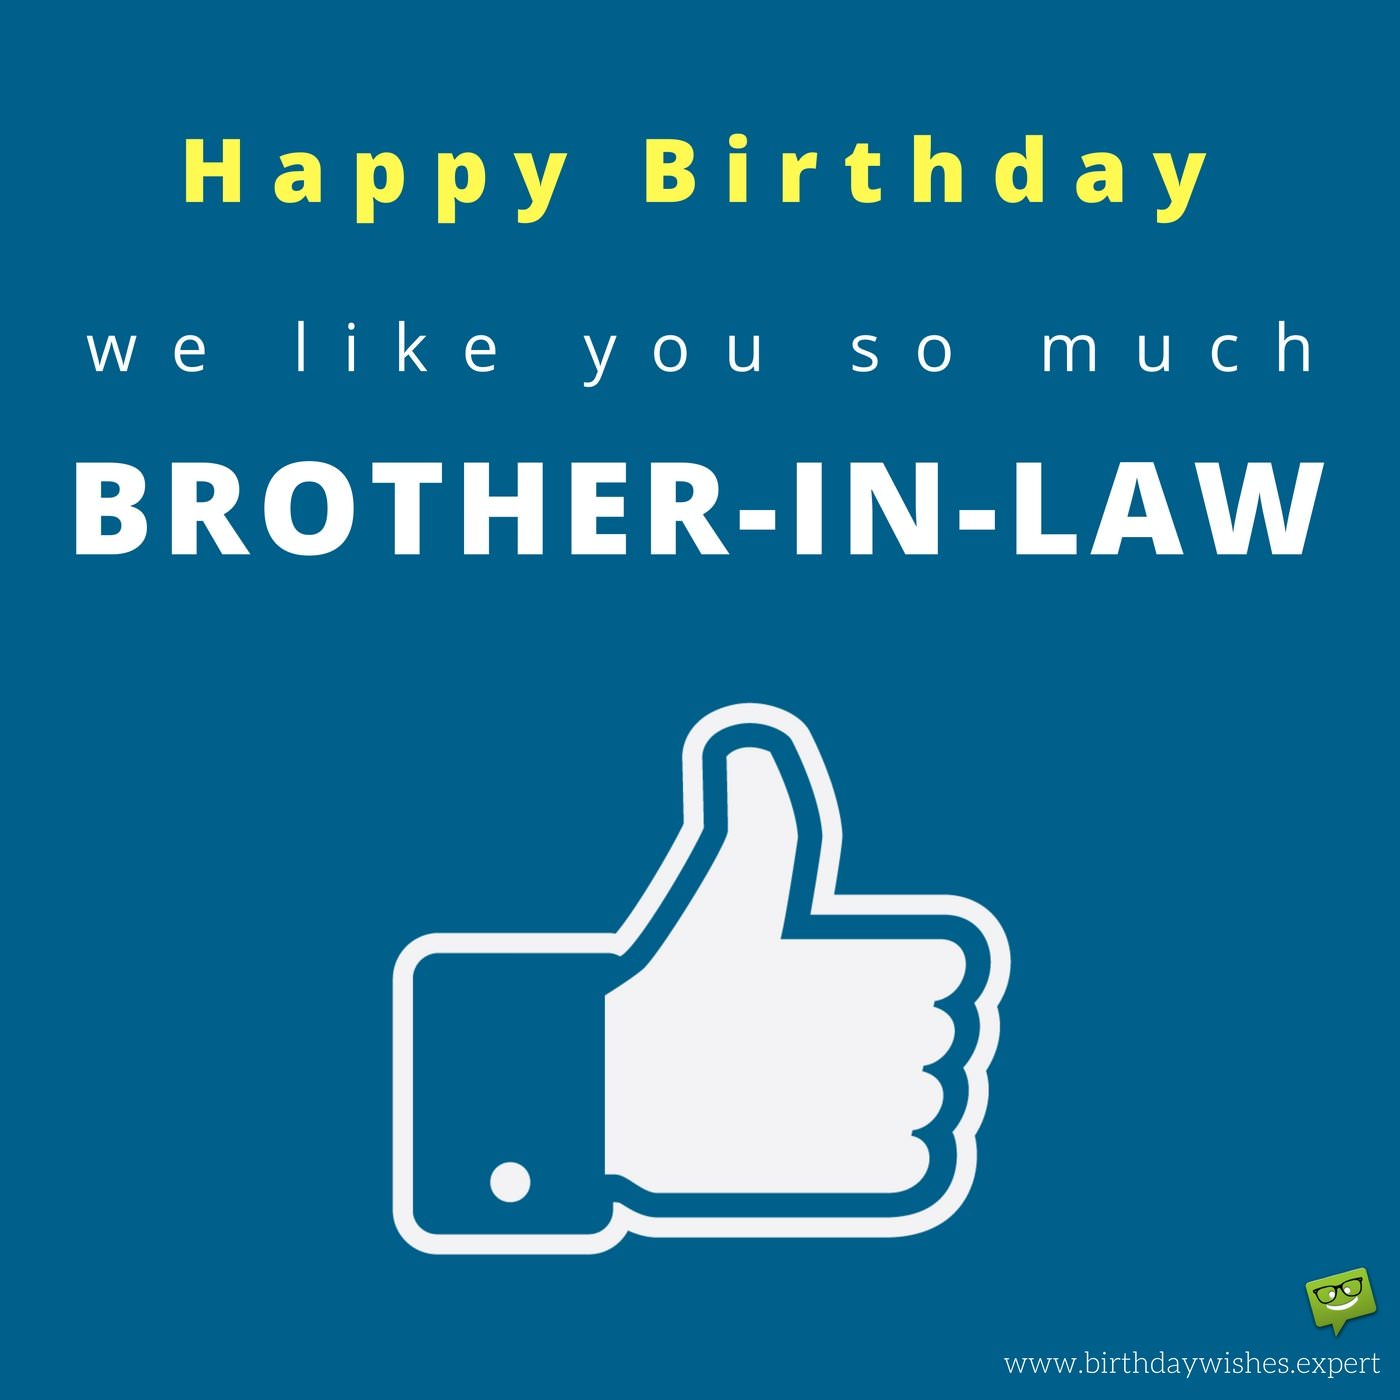 We Like You So Much Brother In Law Birthday Wishes